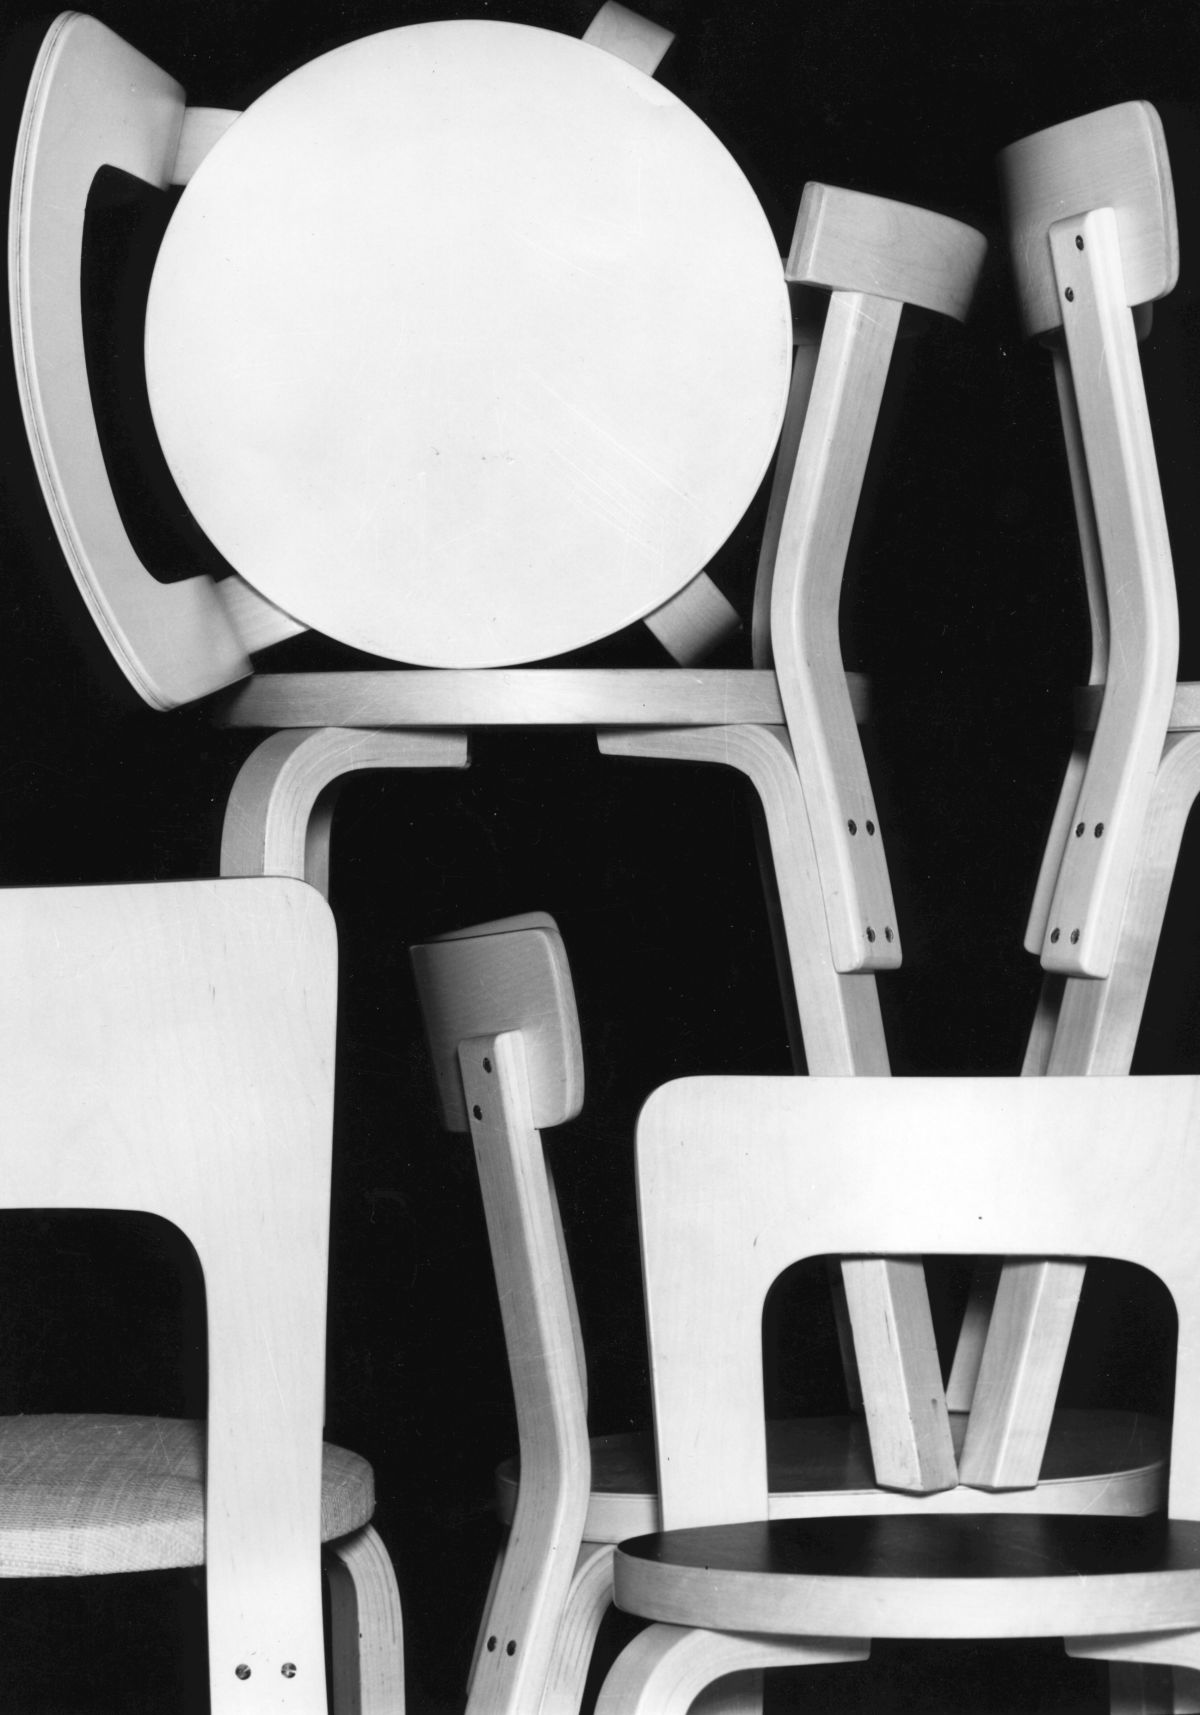 Chair-66-Chair-65-Black-White-Image-1856588